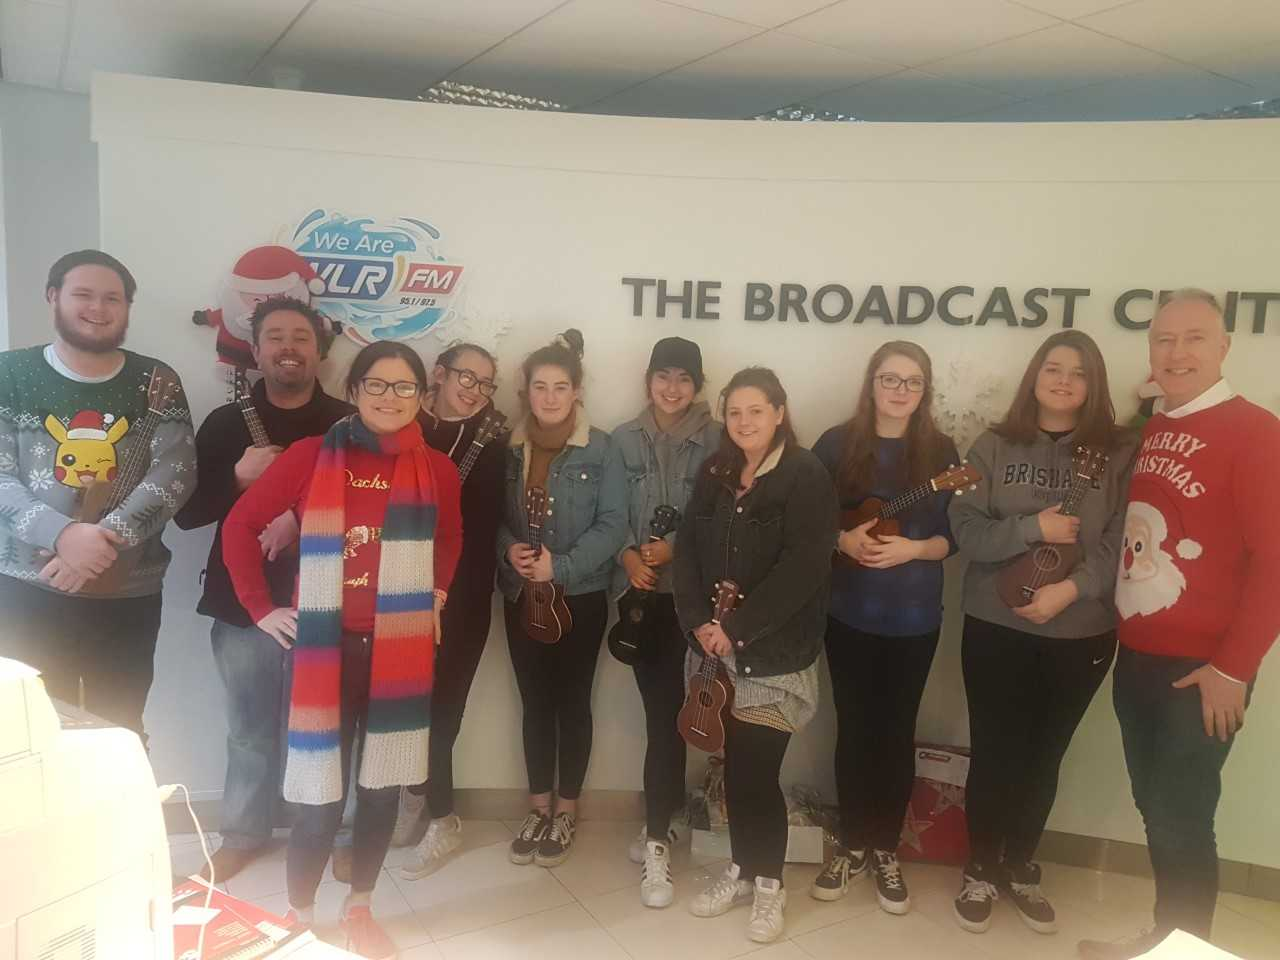 Listen back: The Big Breakfast Blaa brought the 'Ukeleleans' from WAMA on air for Christmas Eve..